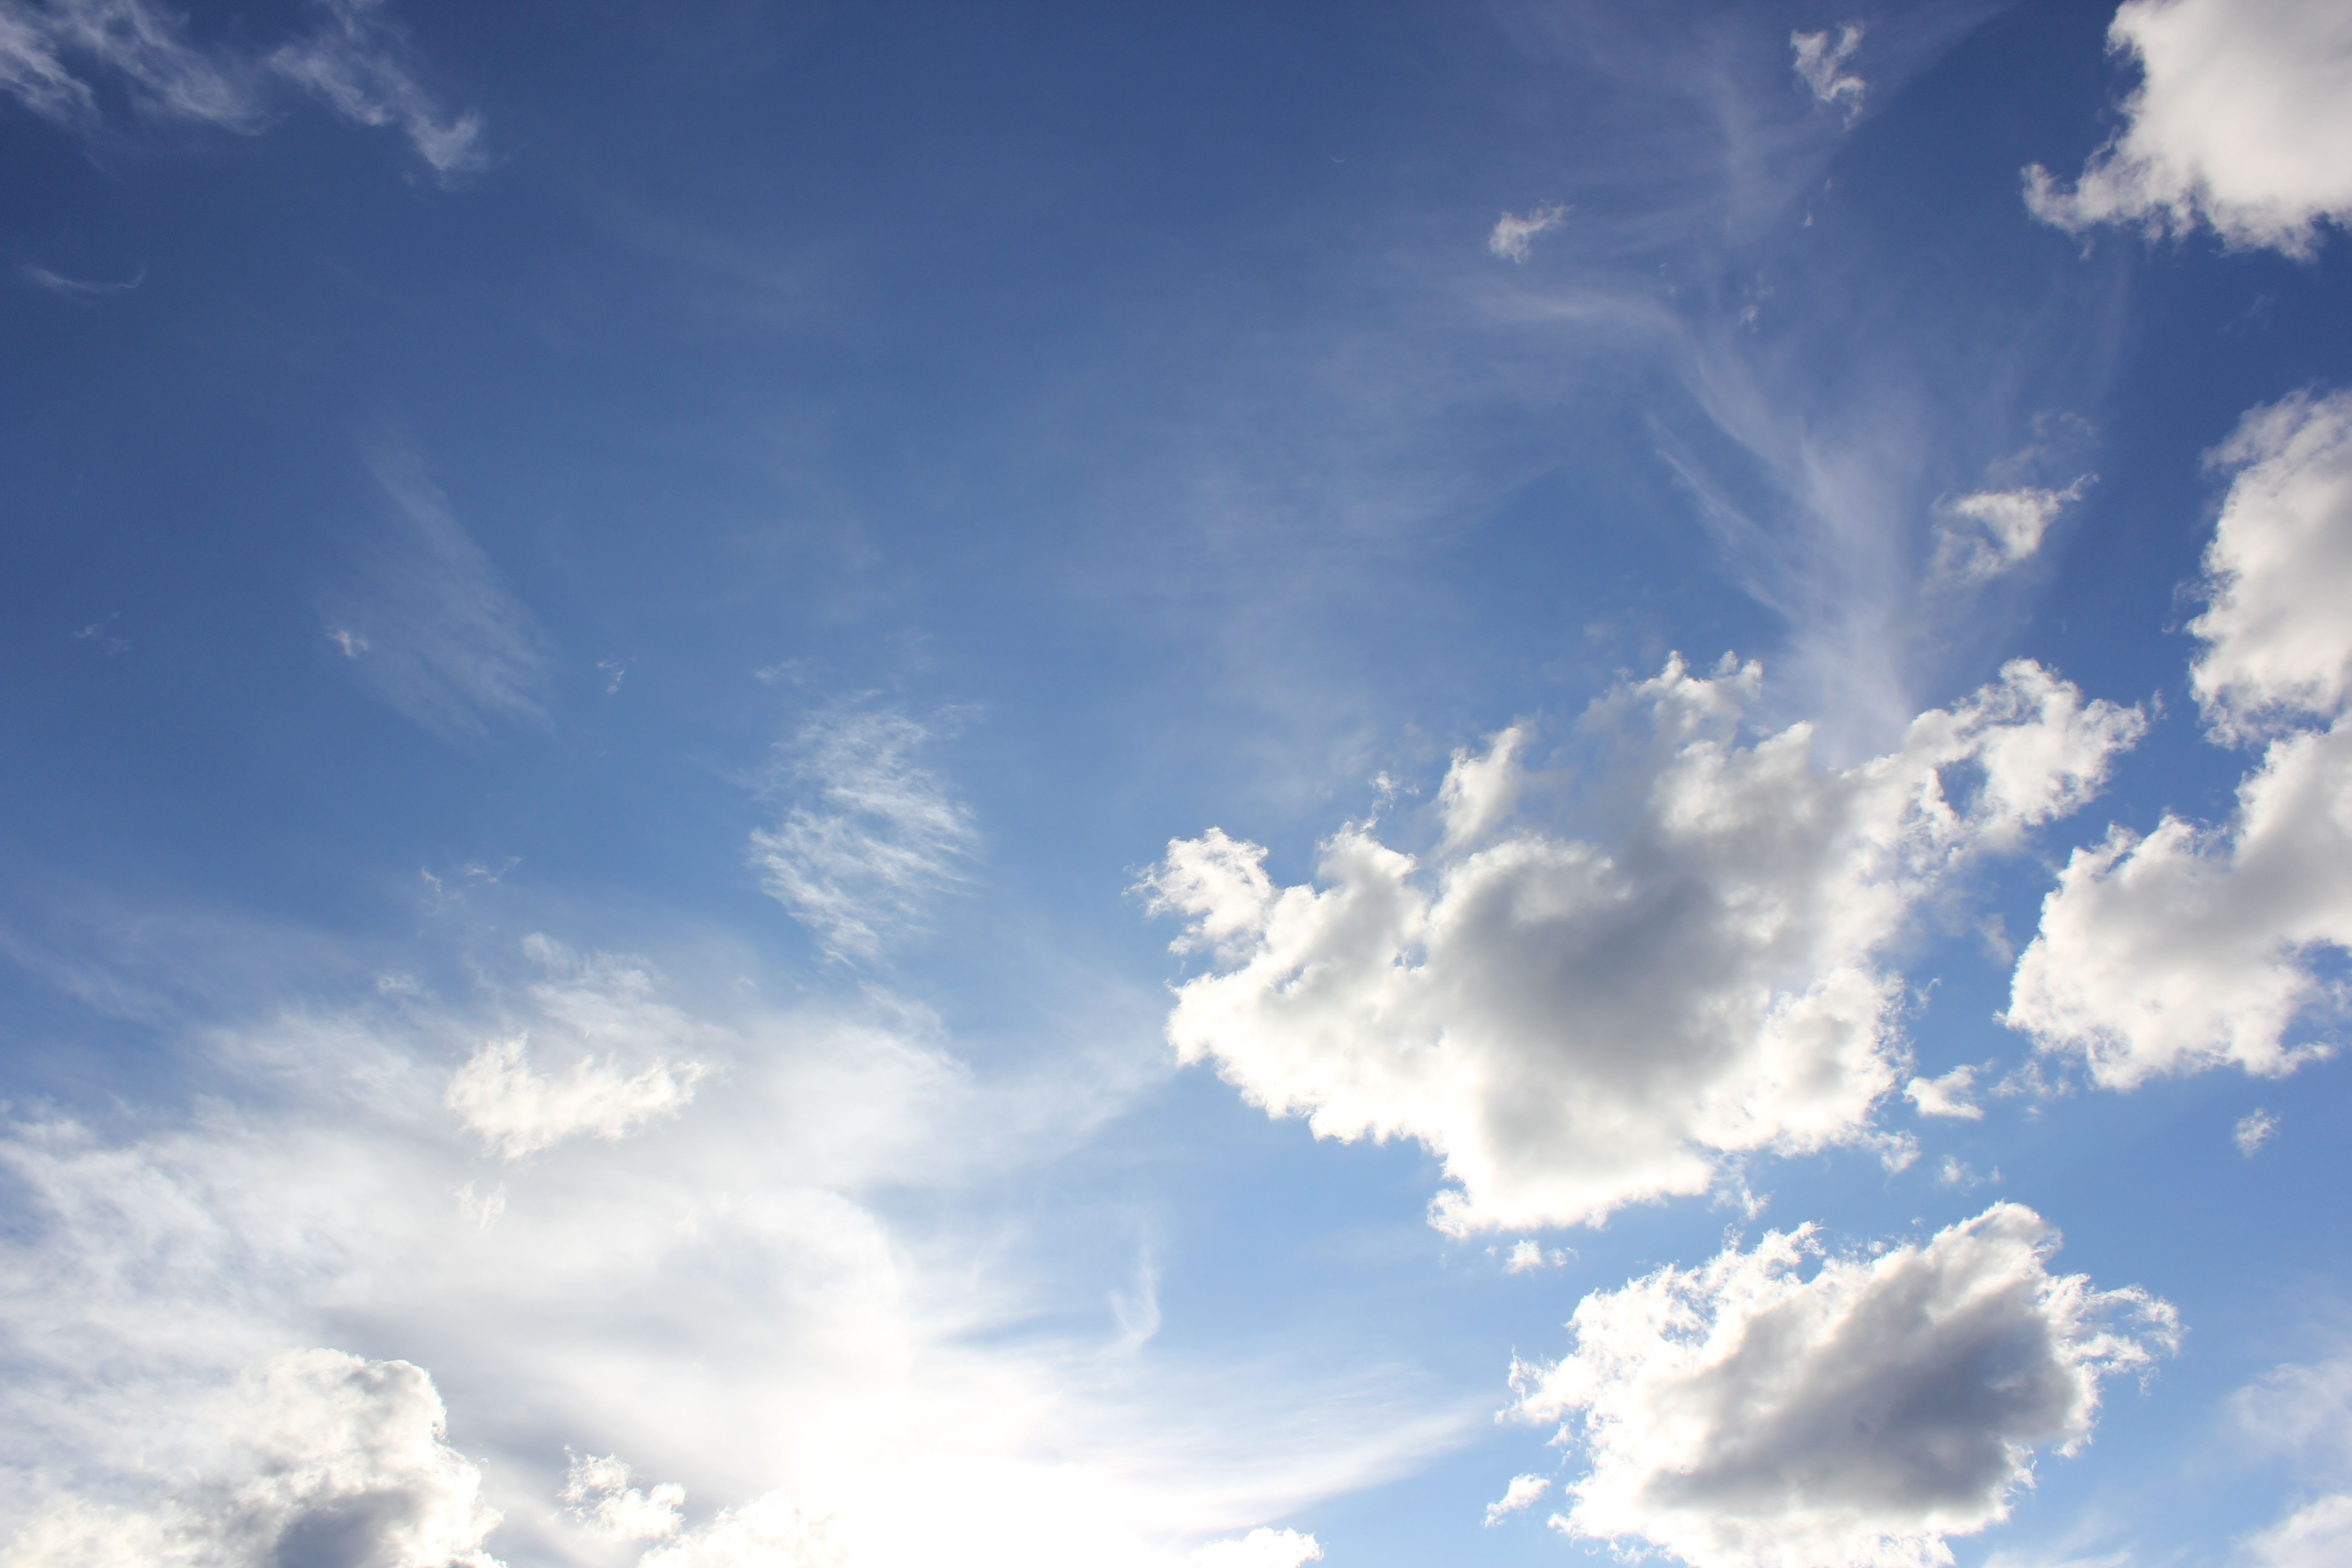 Sky Pictures Collection For Free Download.